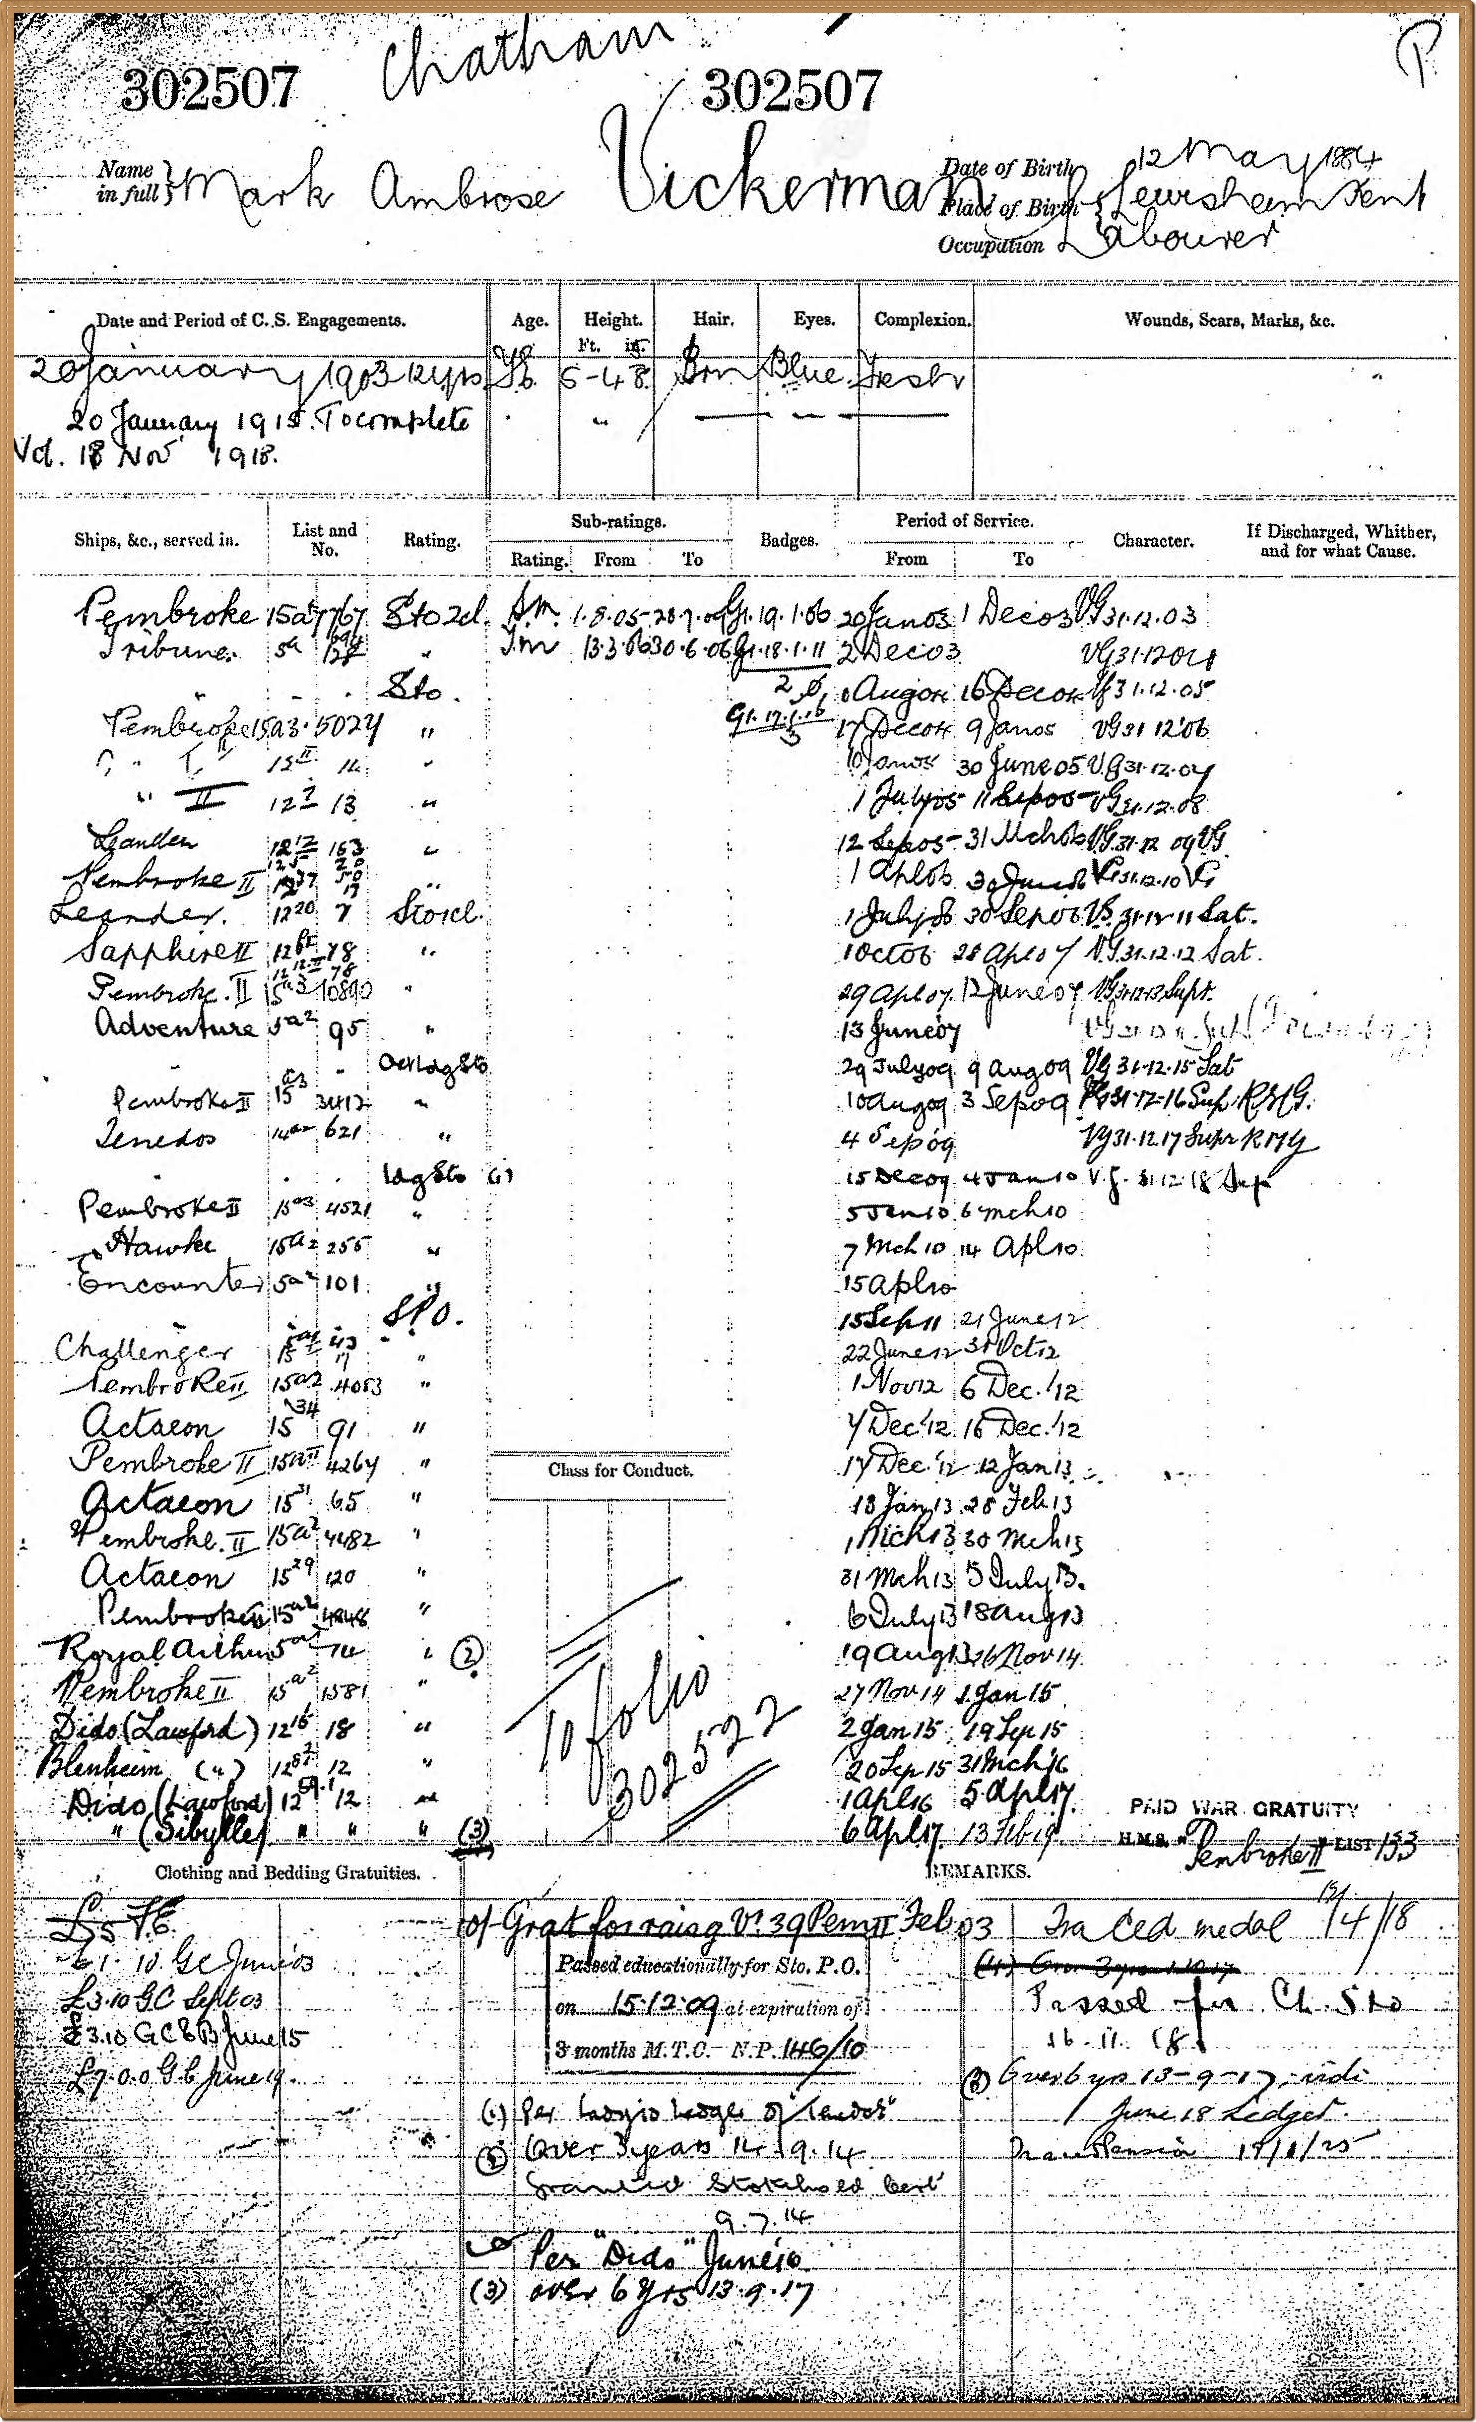 Mark Vickerman's naval record from 1903 to 1919, The National Archives, Kew (? via Ancestry)